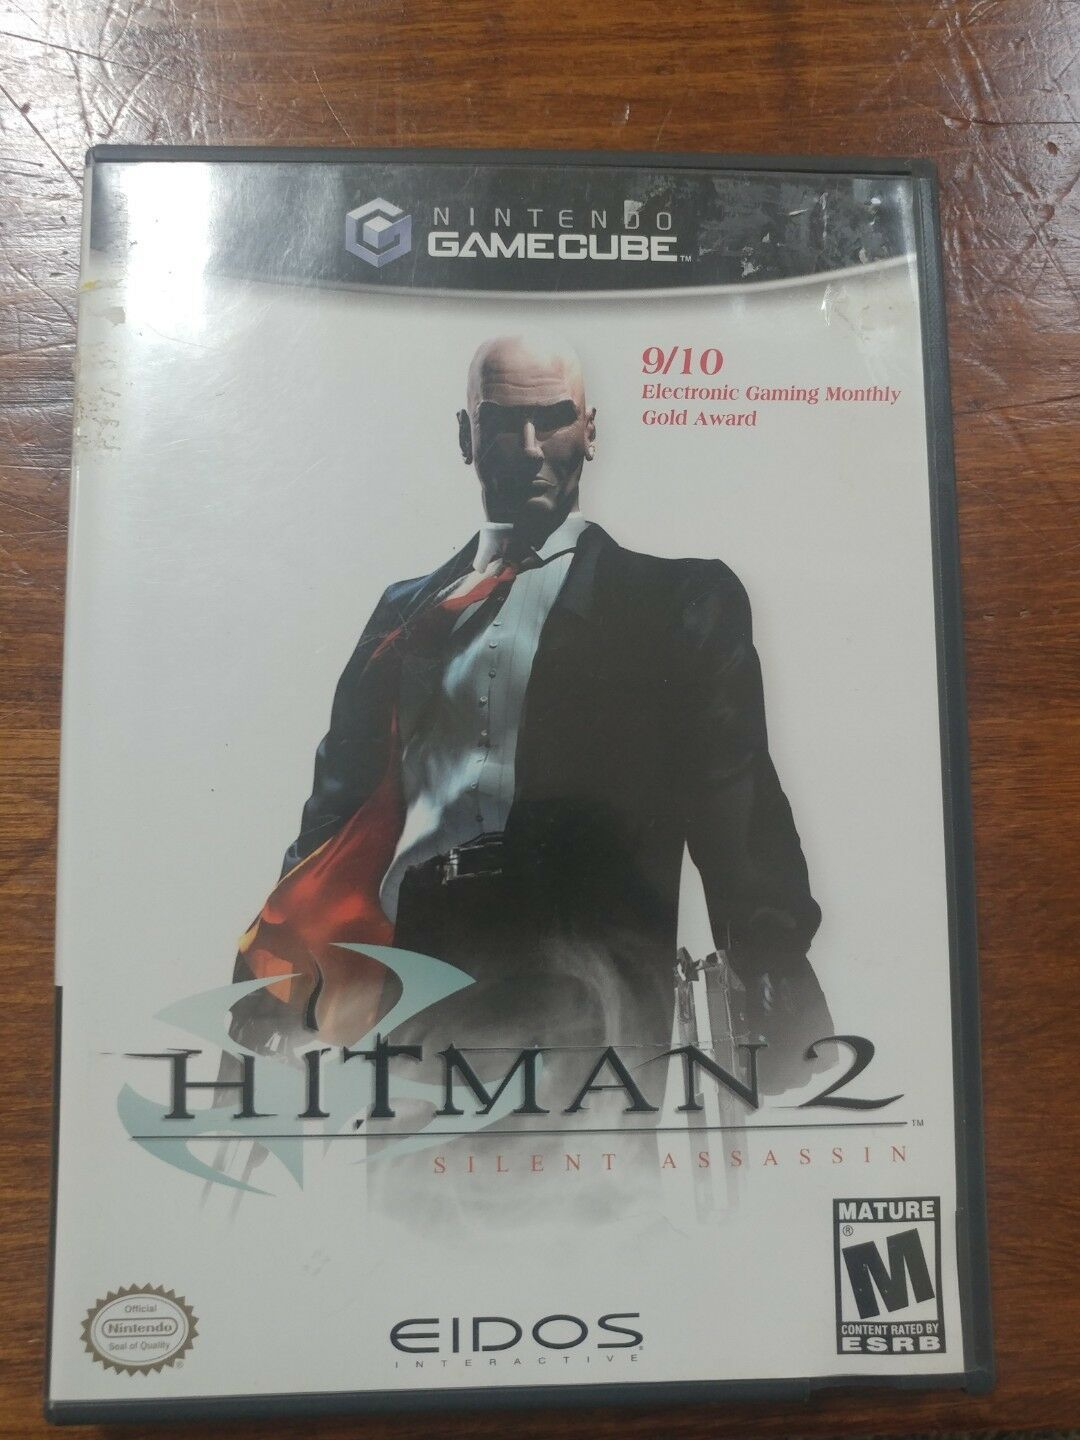 Hitman 2: Silent Assassin (Nintendo Gamecube, 2003)